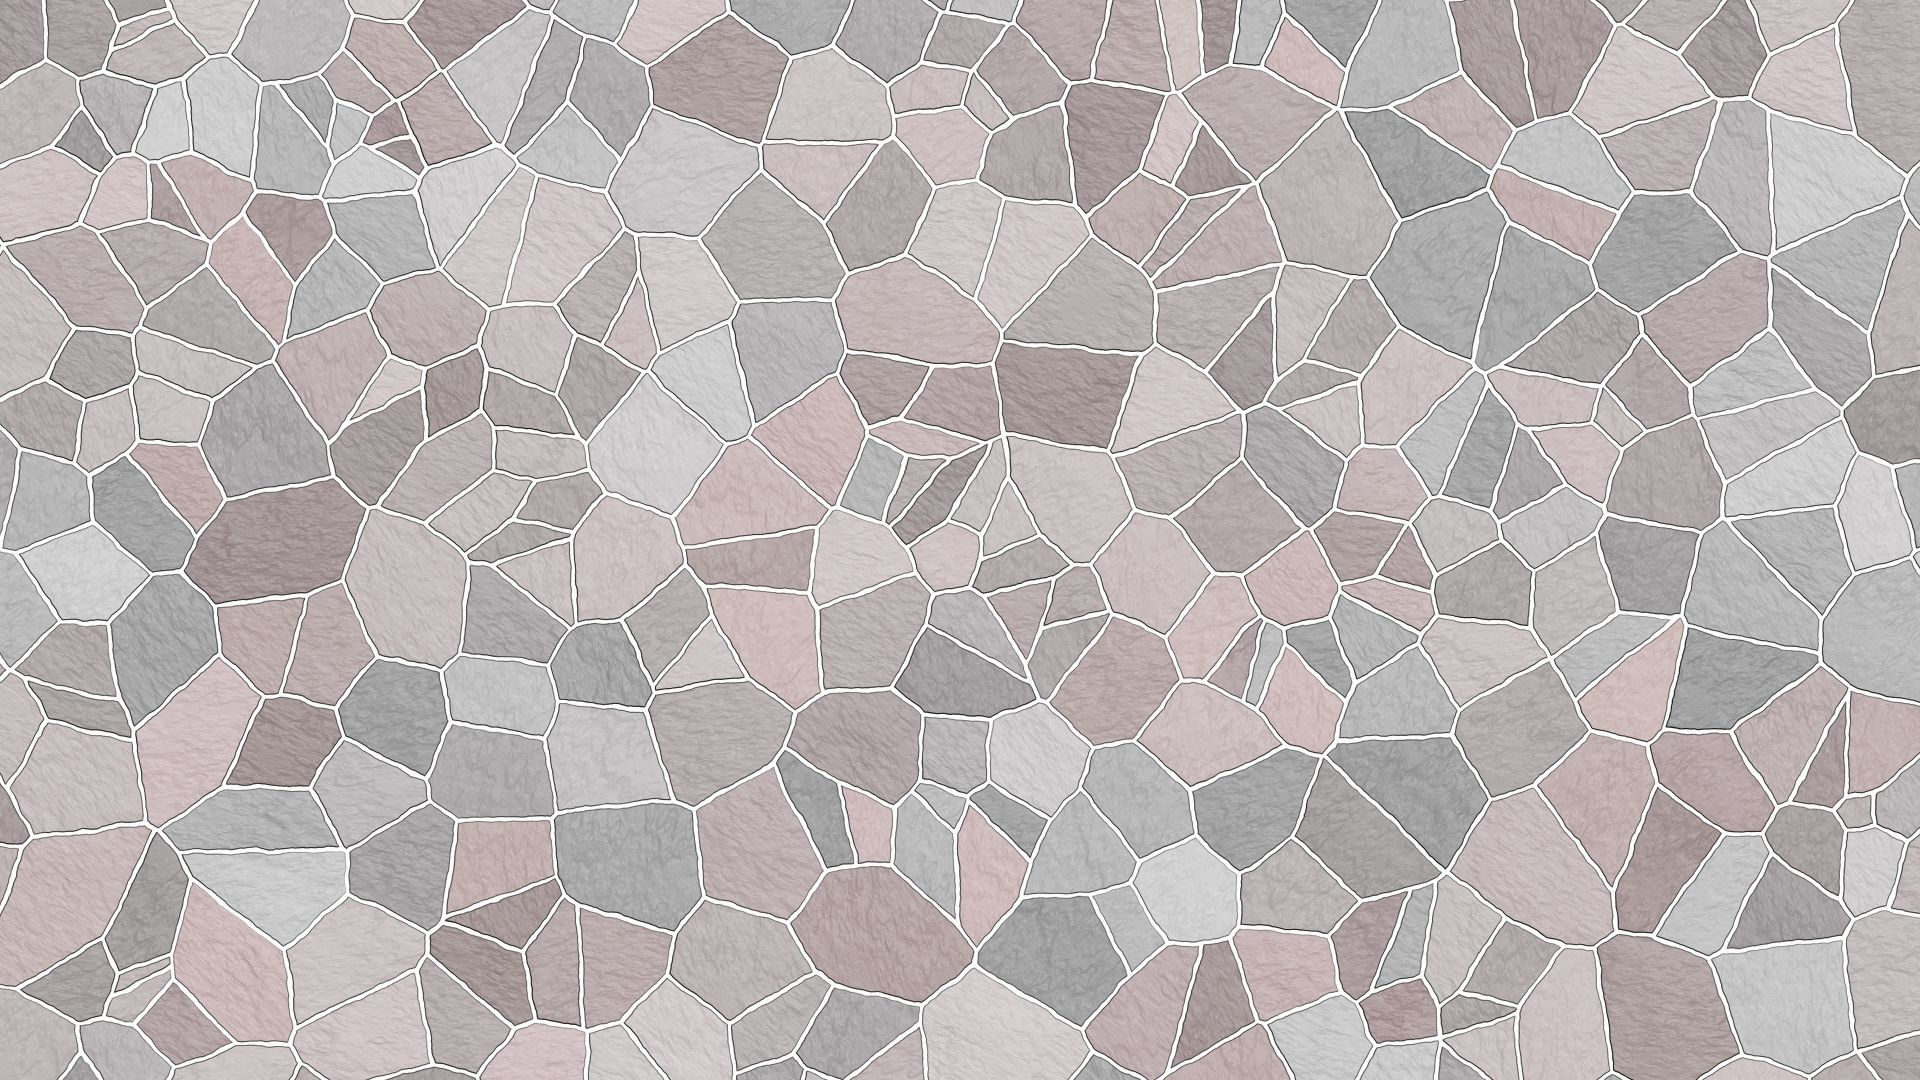 Wallpaper Abstract, texture, surface, pattern, tile, 4k